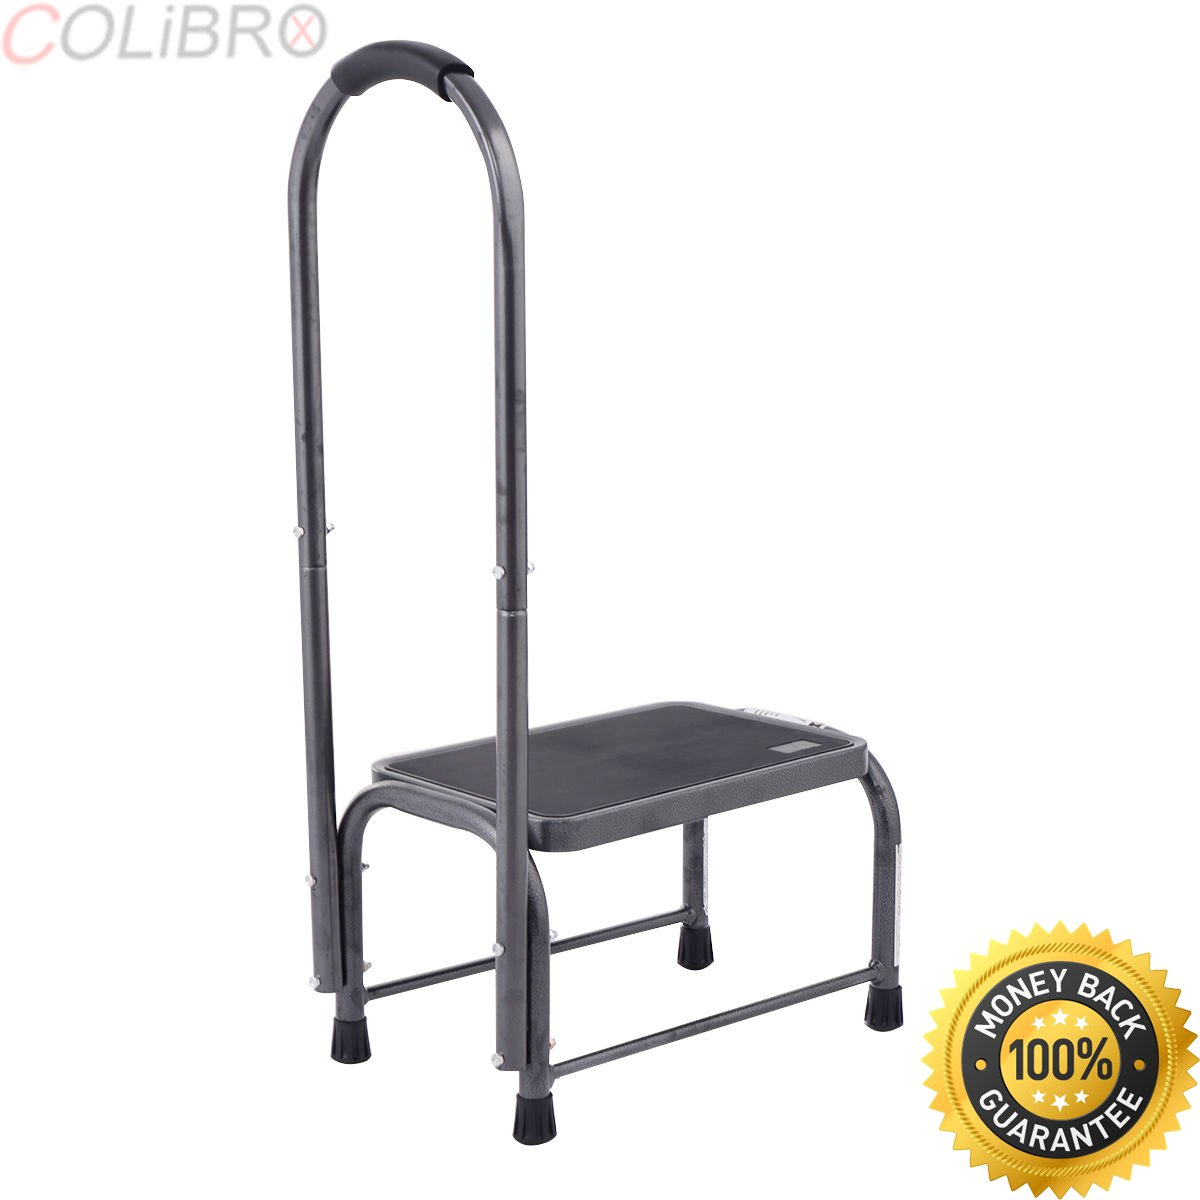 Buy Colibrox Non Slip Handy Support Step Stool W Handle 330 Lbs Load Capacity Kitchen Safety Step Stool With Handle For Elderly Best Adjustastep Amazon Handicap Step Stool With Handle Step Stools In Cheap Price On